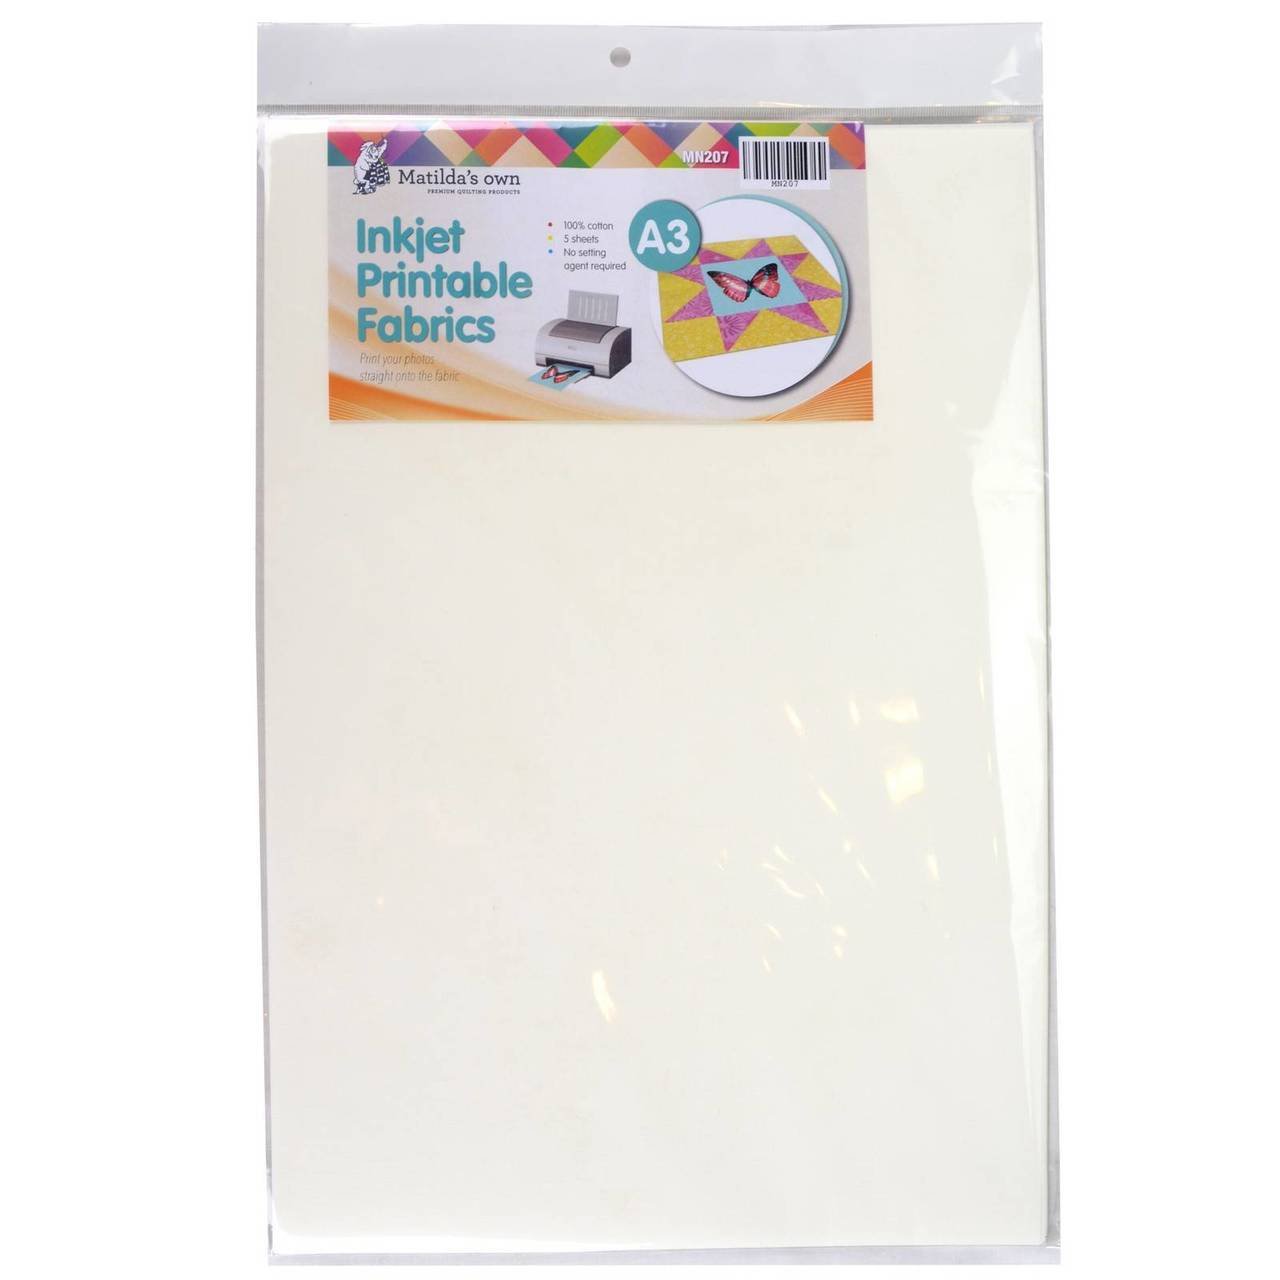 image about Inkjet Printable Fabric identify Inkjet Printable Cloth A3 5 sheets Matildas Private